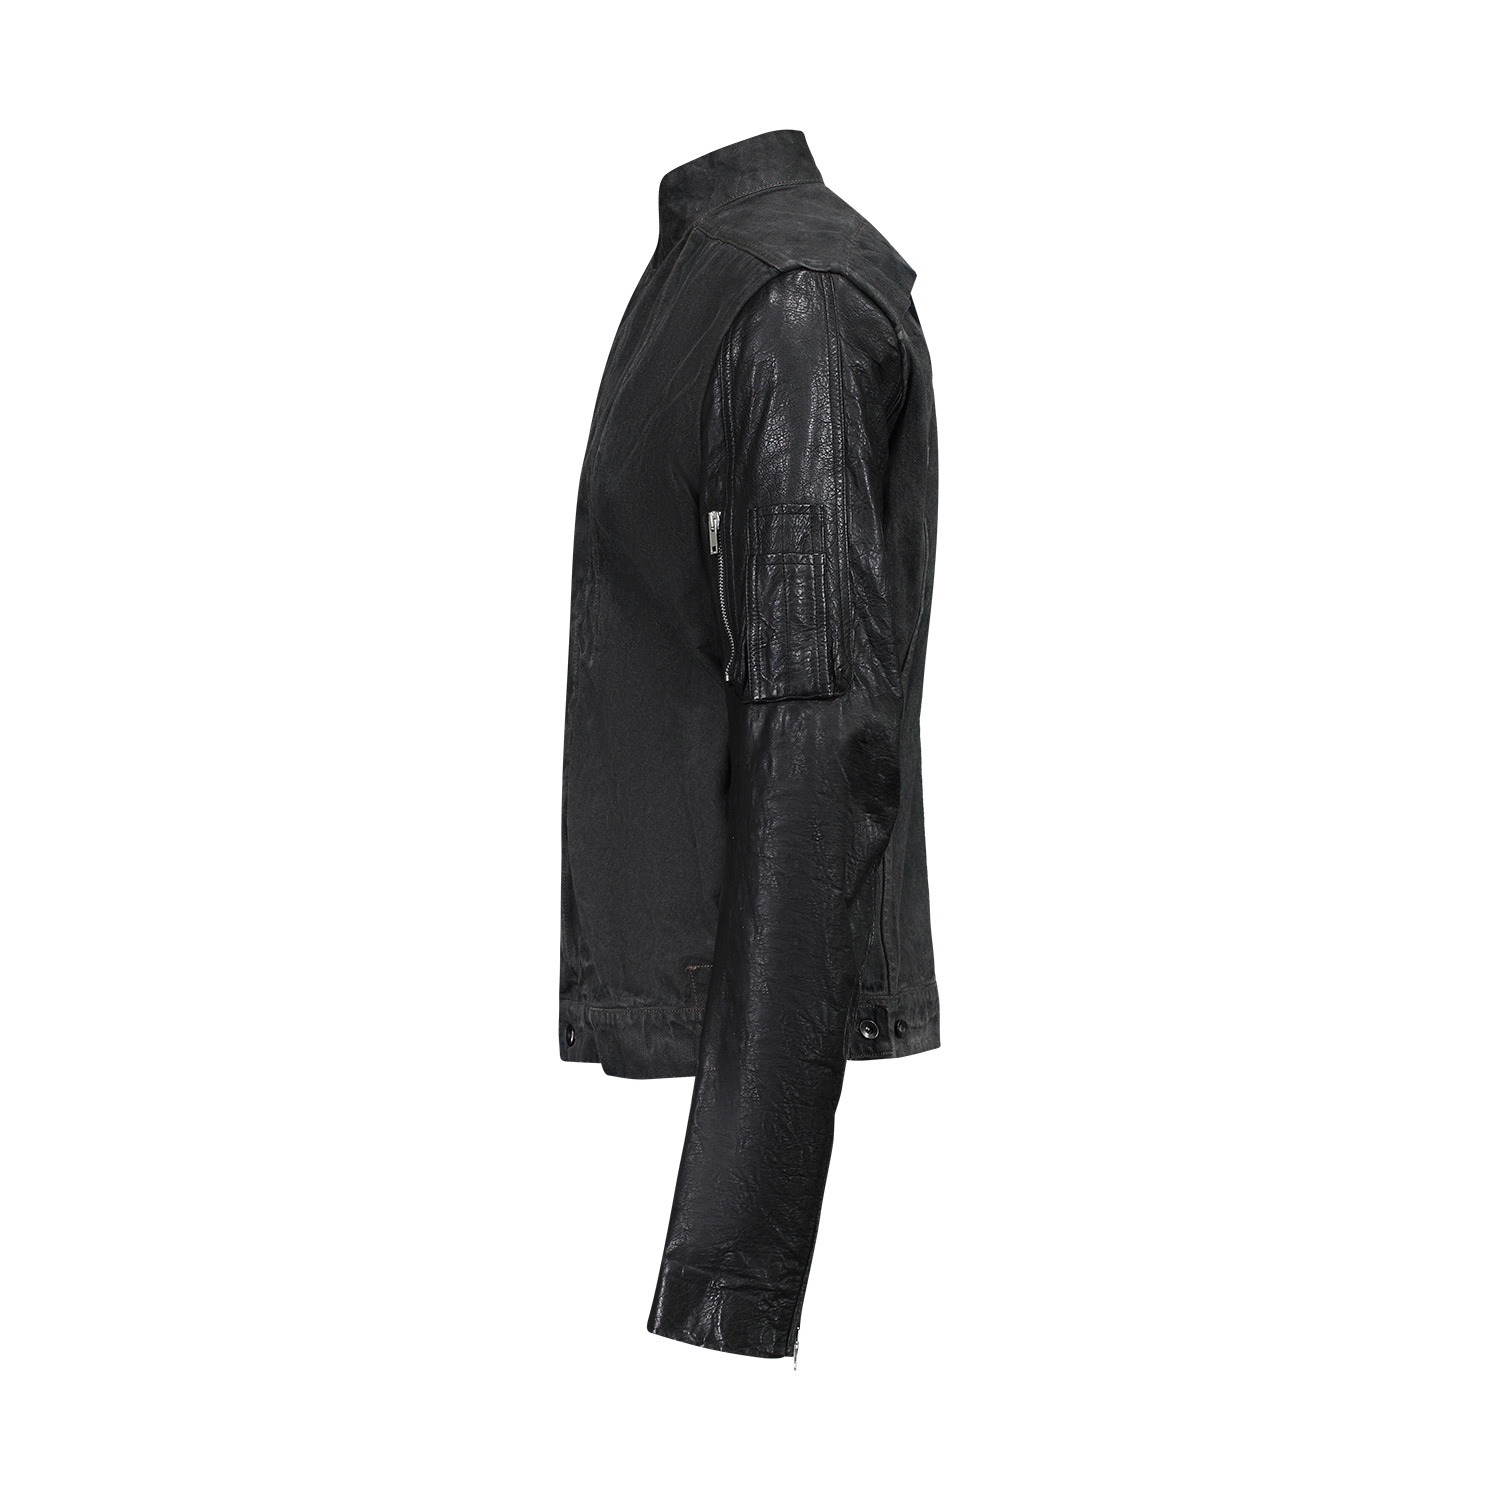 Rick Owens DRKSHDW N/A - Rick Owens DRKSHDW Slave Jacket with Leather Sleeves